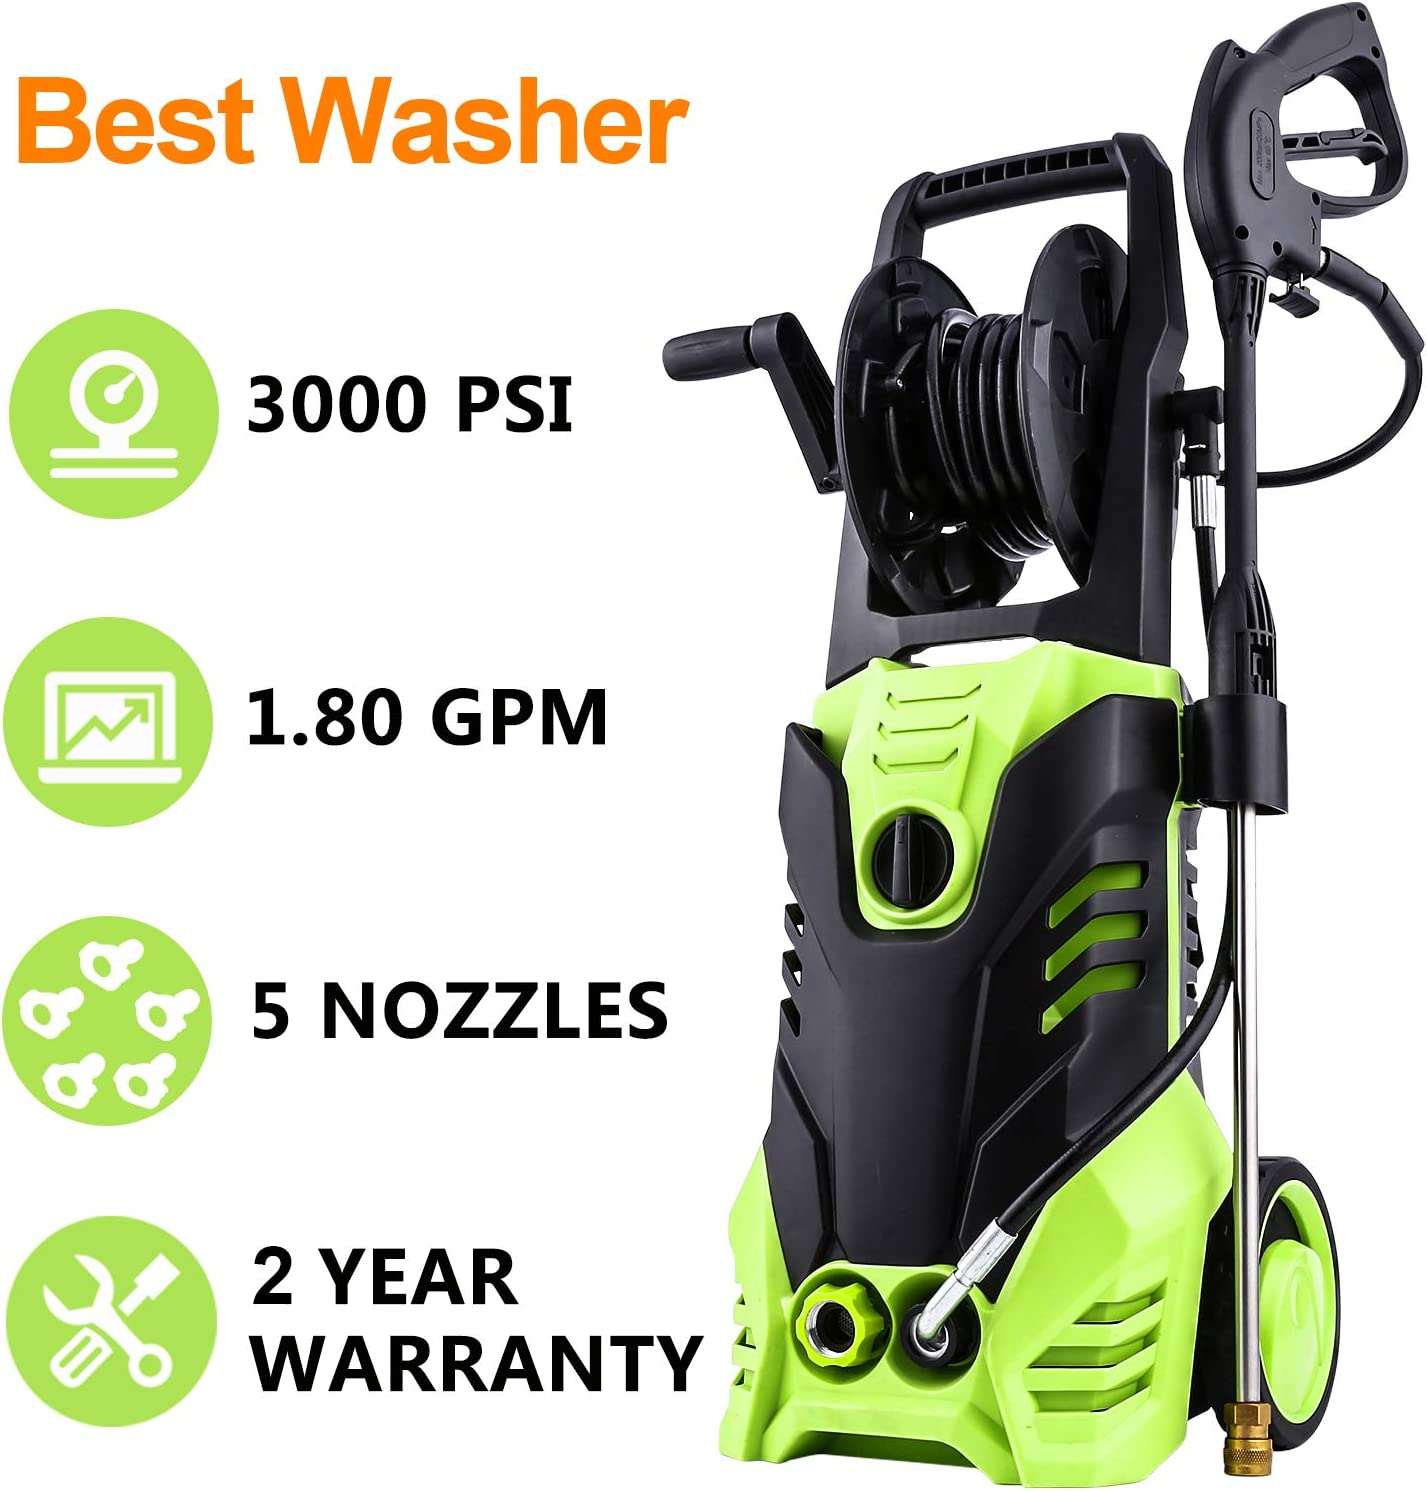 Homdox Power Washer 3000 PSI Electric Pressure Washer 1.80 GPM High Pressure Washer with 5 Nozzles for Car, Garden, Patio